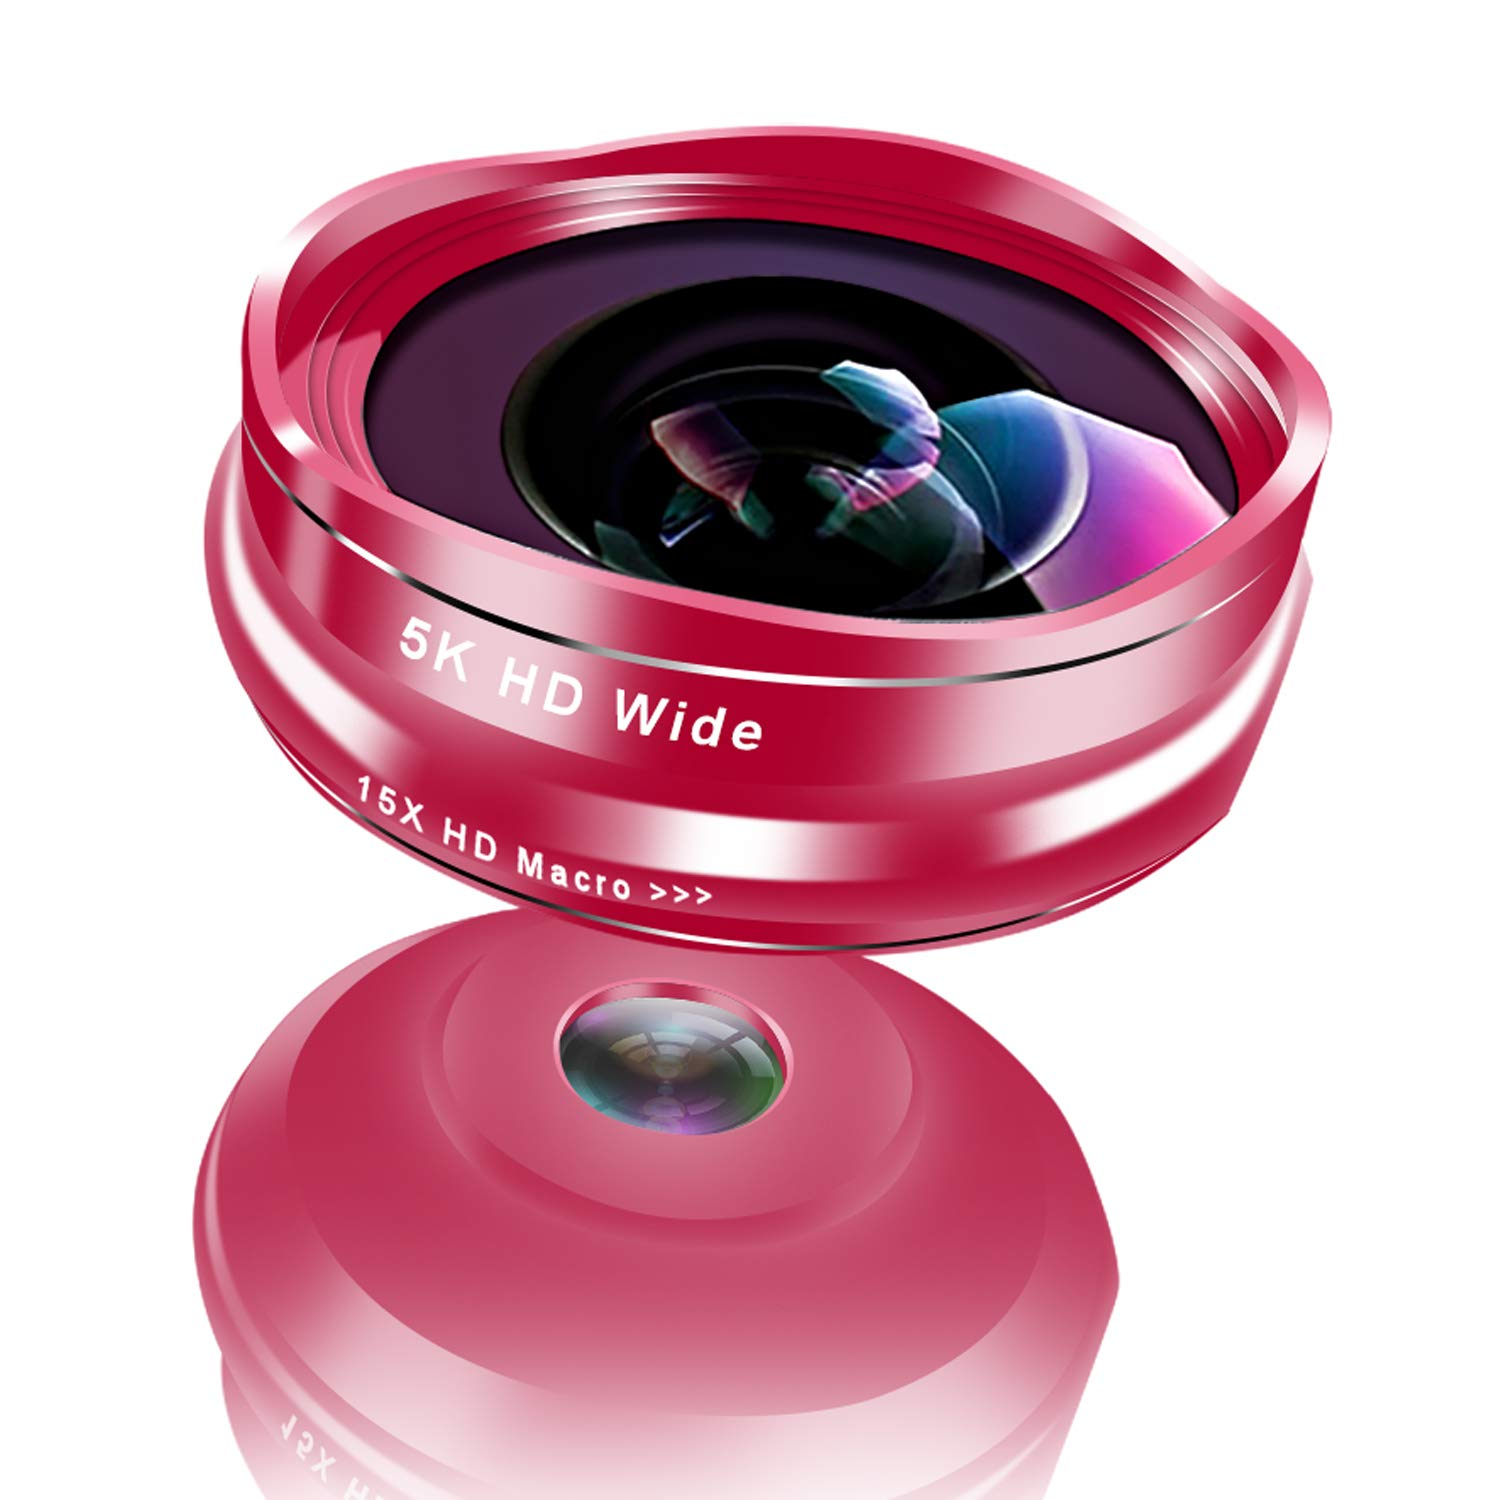 QinCoon Flower Bud Phone Lens, 0.45X Wide Angle & 15X Macro Lens, 2 in 1 Clip-On 5K HD Cell Phone Camera Lens for iPhone, Samsung Galaxy, Android Smartphones, No Distortion (Rose Gold)